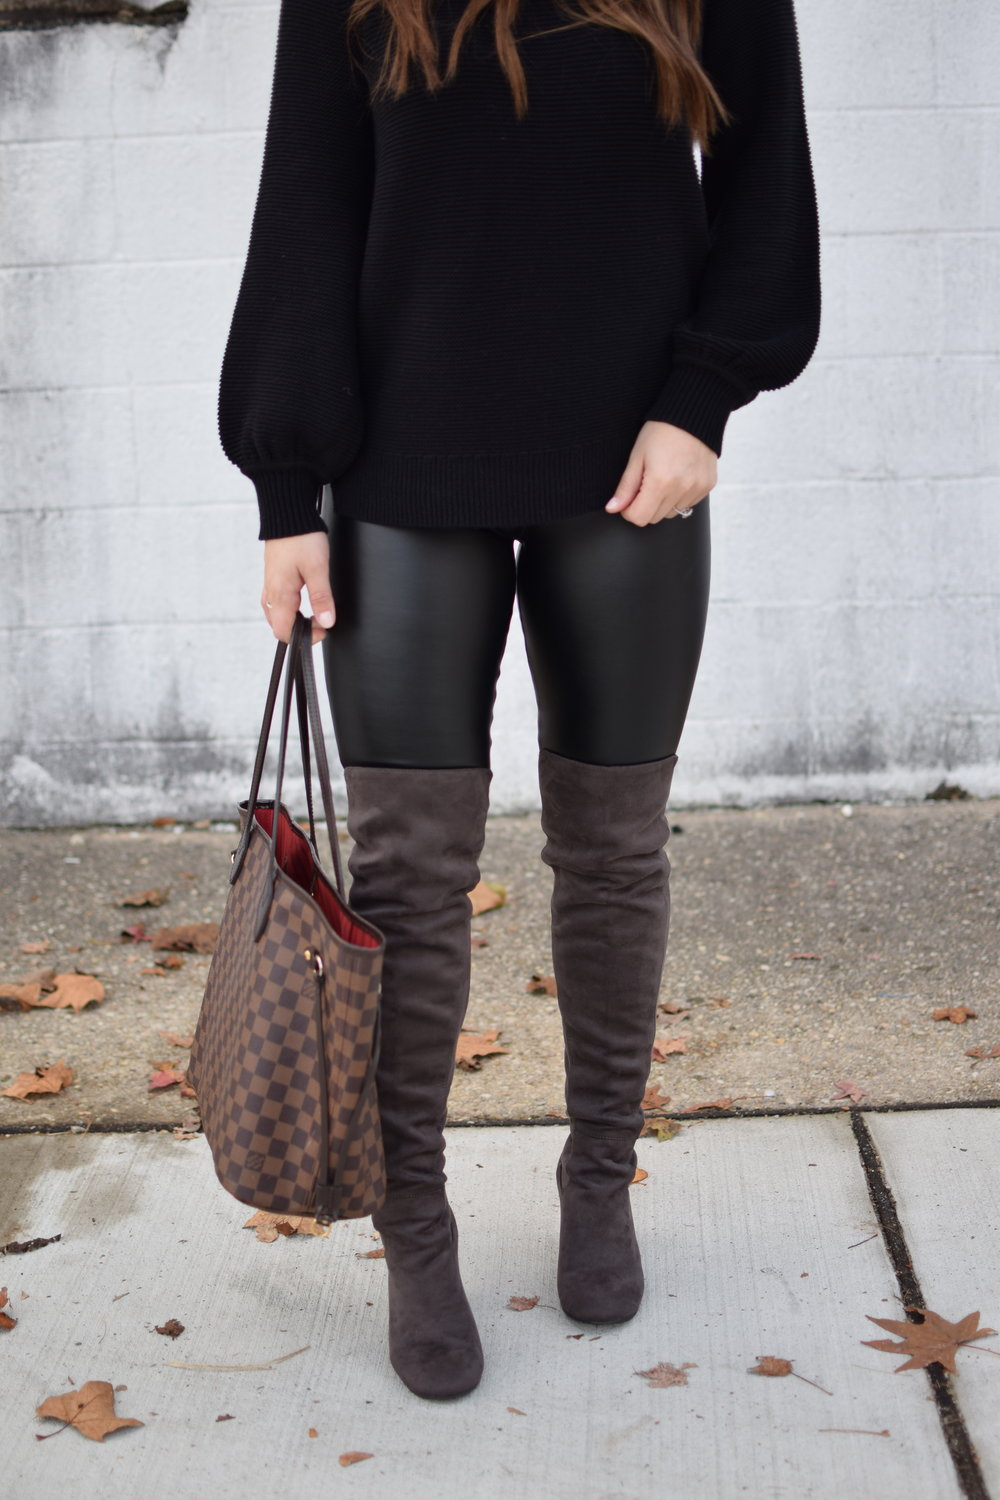 Weekend Sales + Free Shipping Day | Pine Barren Beauty | winter fashion, winter outfit idea, winter outfit inspiration, cozy sweater, sweater weather, faux leather leggings, over the knee boots, how to style faux leather leggings